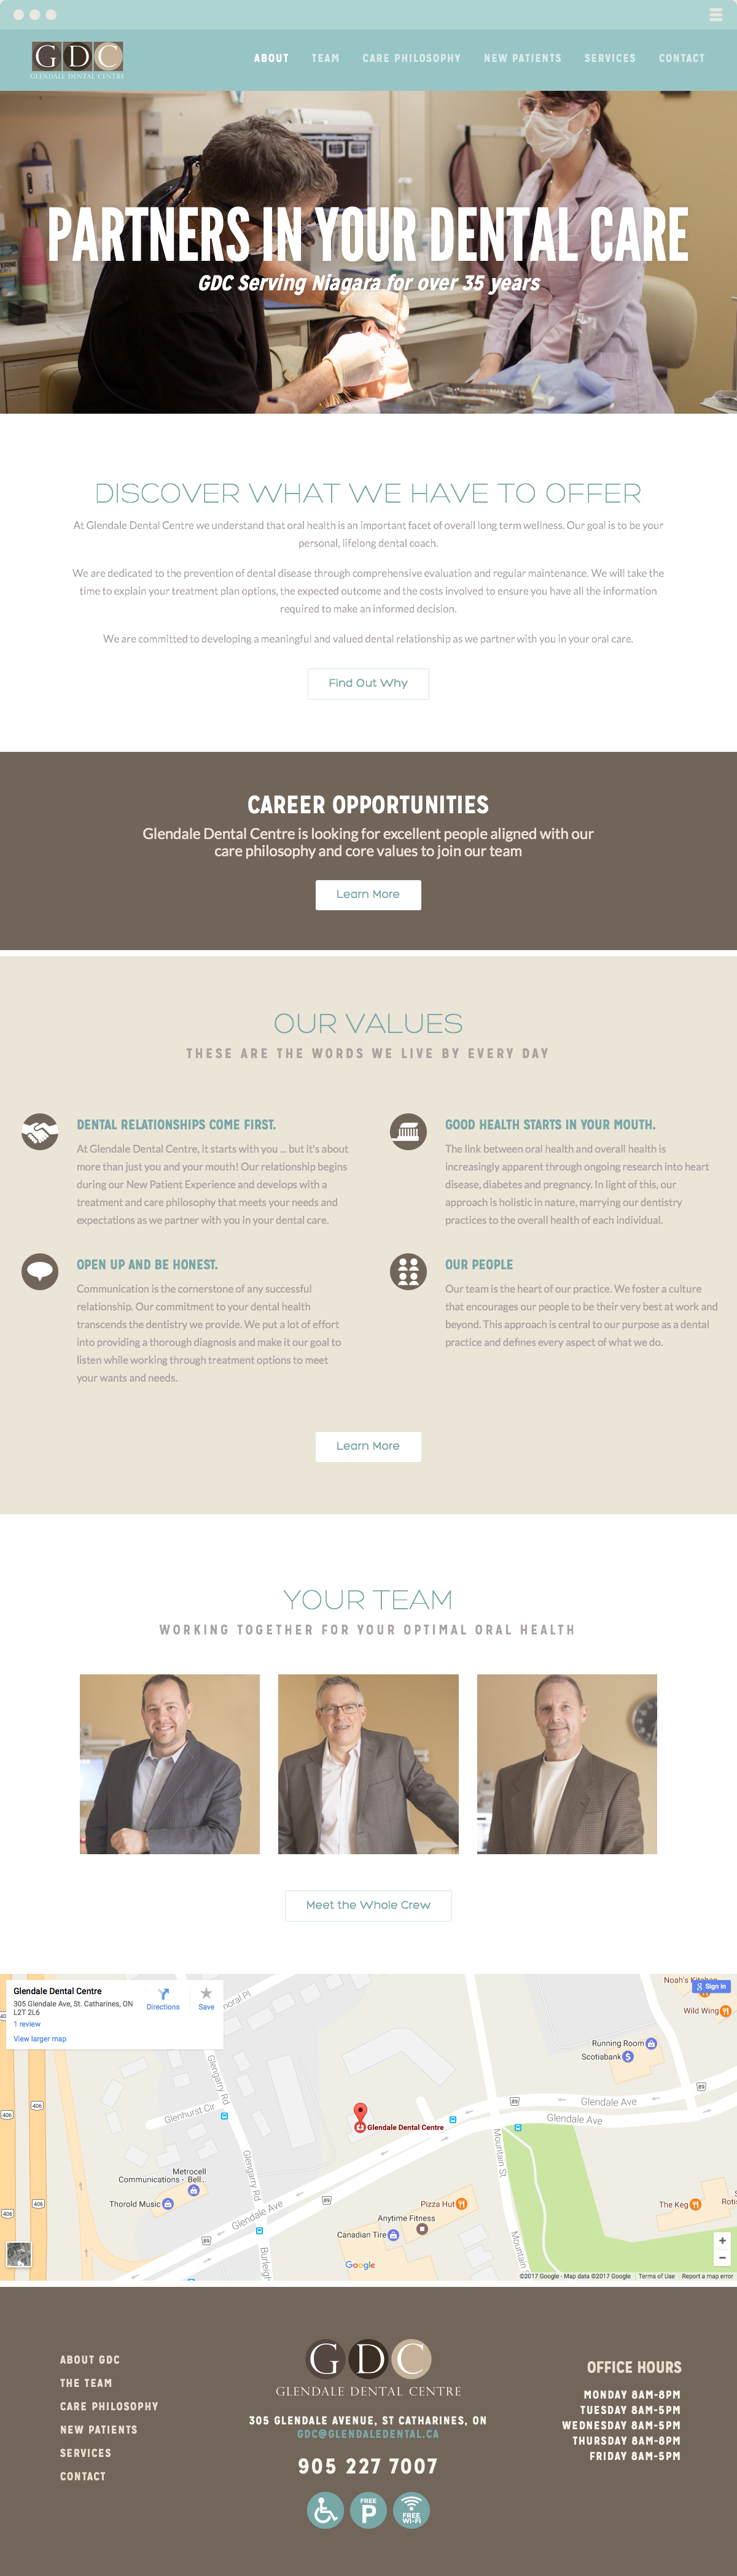 Glendale Dental Centre Website Design & Development Made By Frame